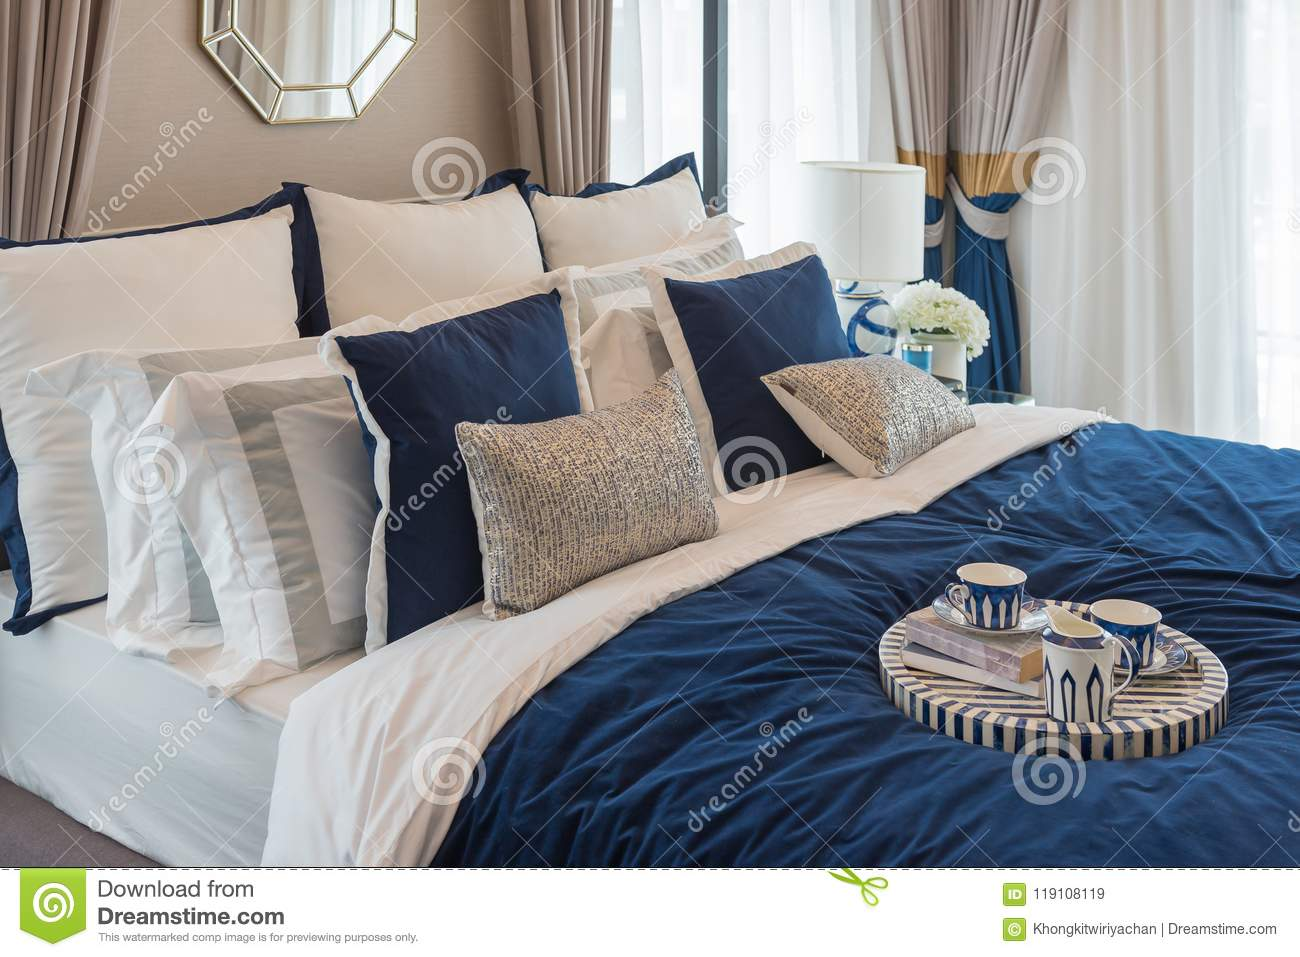 Download Luxury Bedroom In Indigo Blue Tone Stock Image   Image Of Home,  Lifestyle: